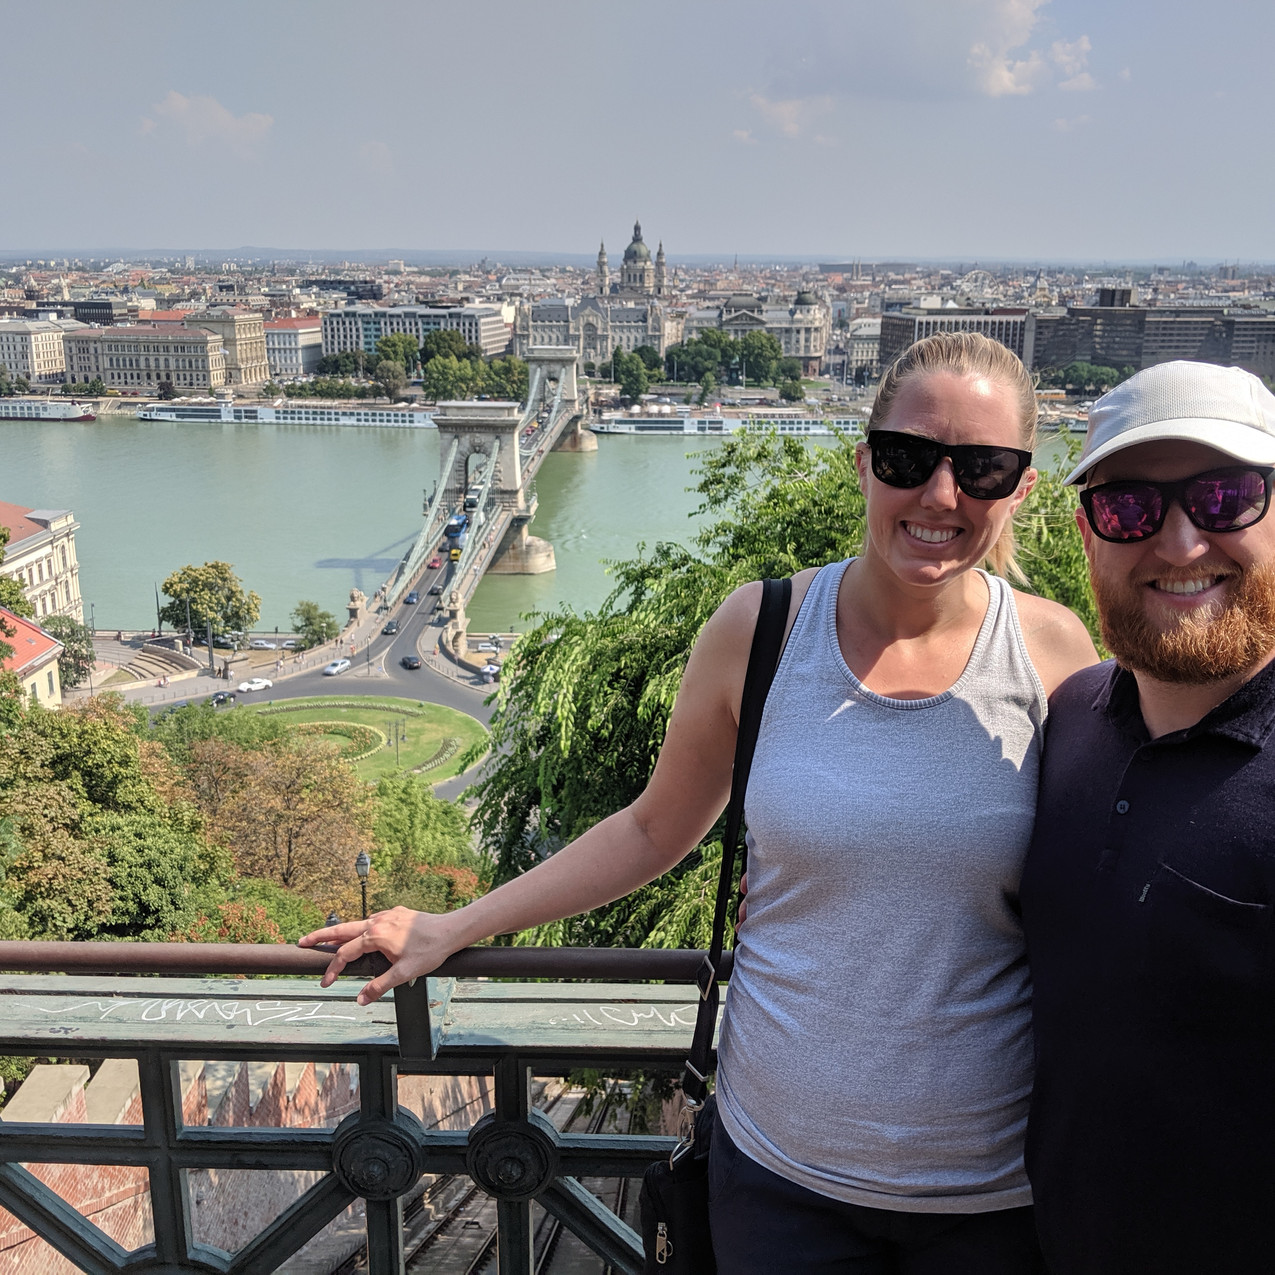 Eddie and Megan at one of the highest points in Budapest overlooking the city and the Danube river.